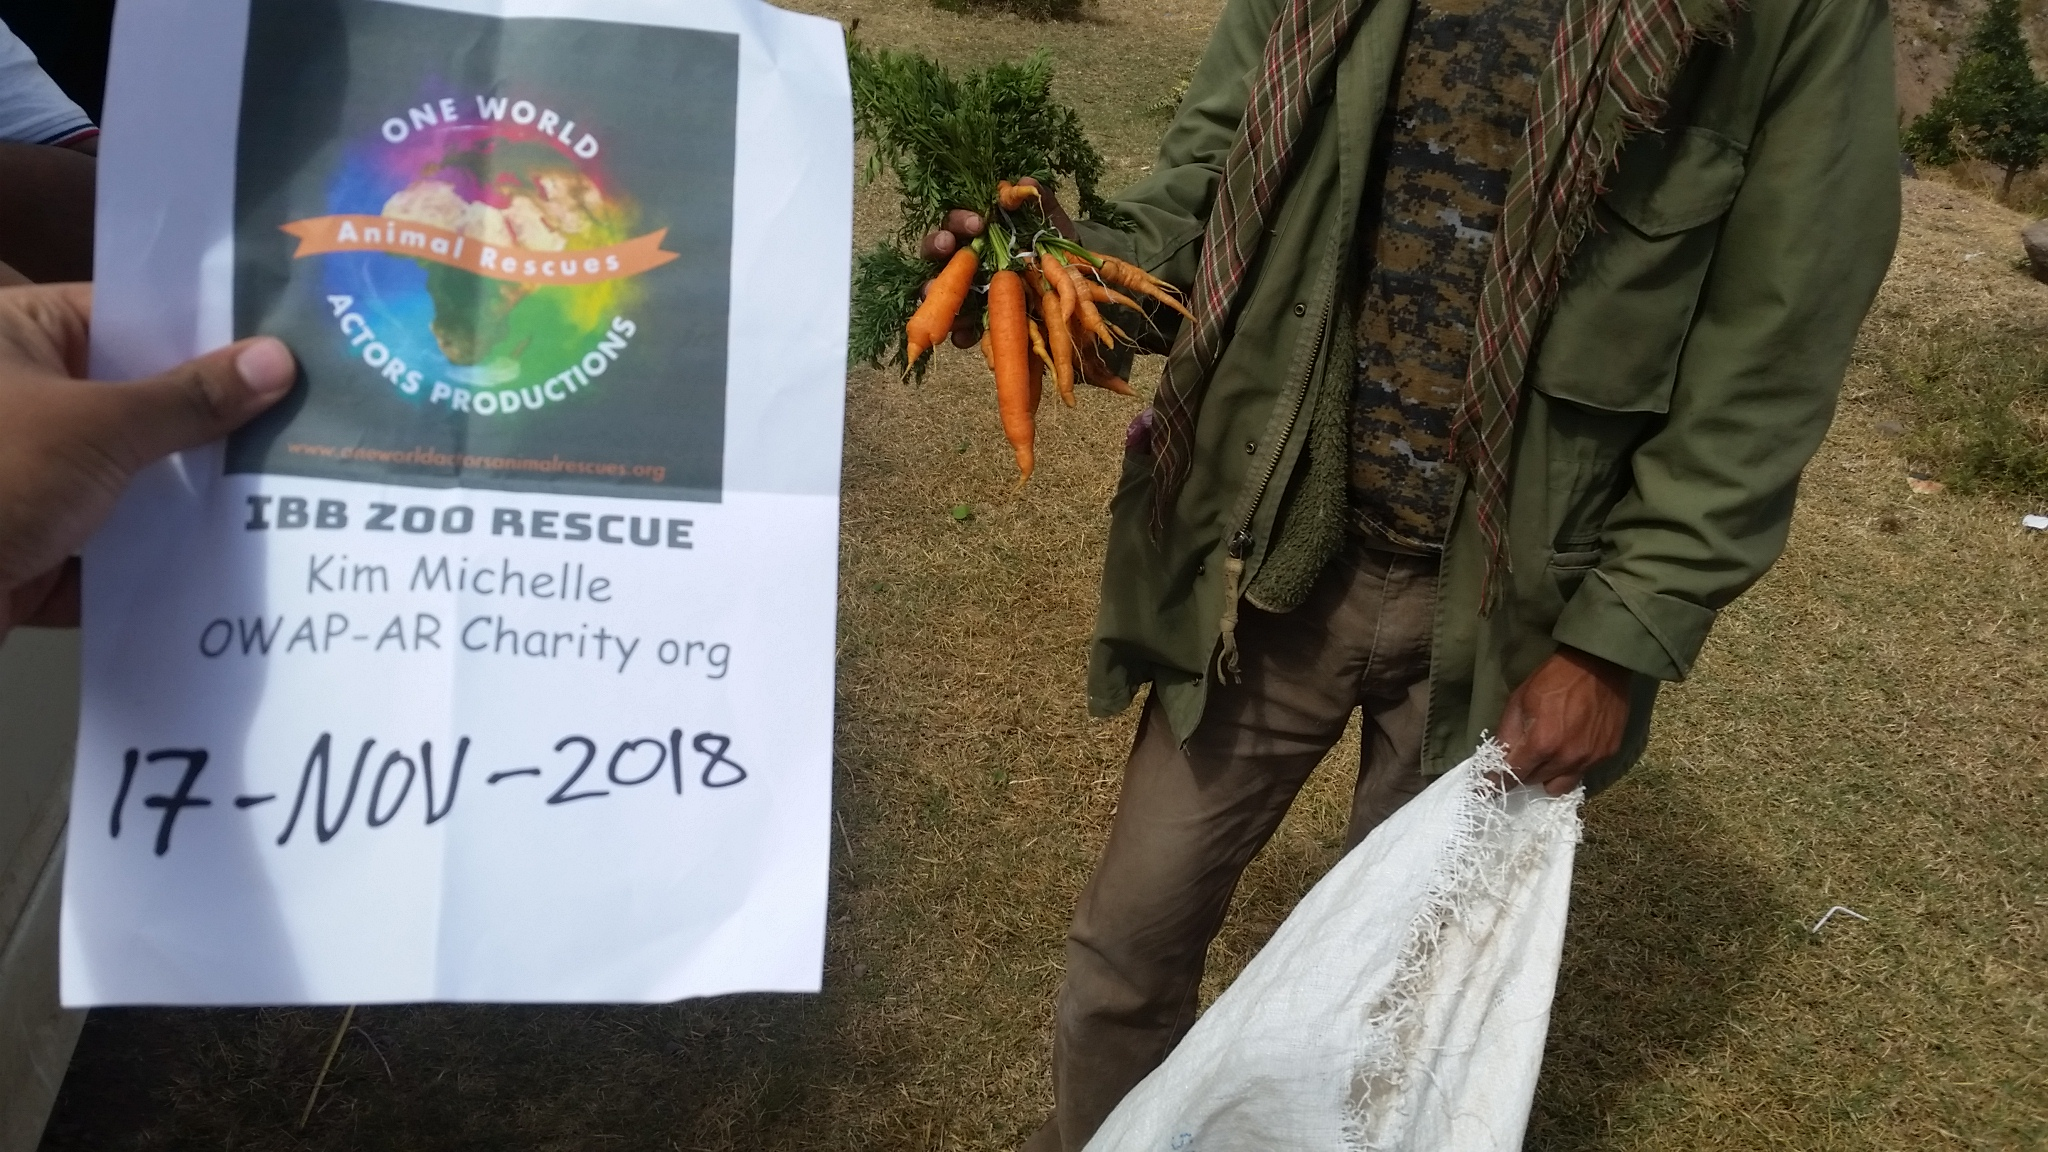 ibb zoo rescue carrots 17 NOV 2018 with our OWAP-AR sign giving horses baboons camels hisham with Abdul razak.jpg